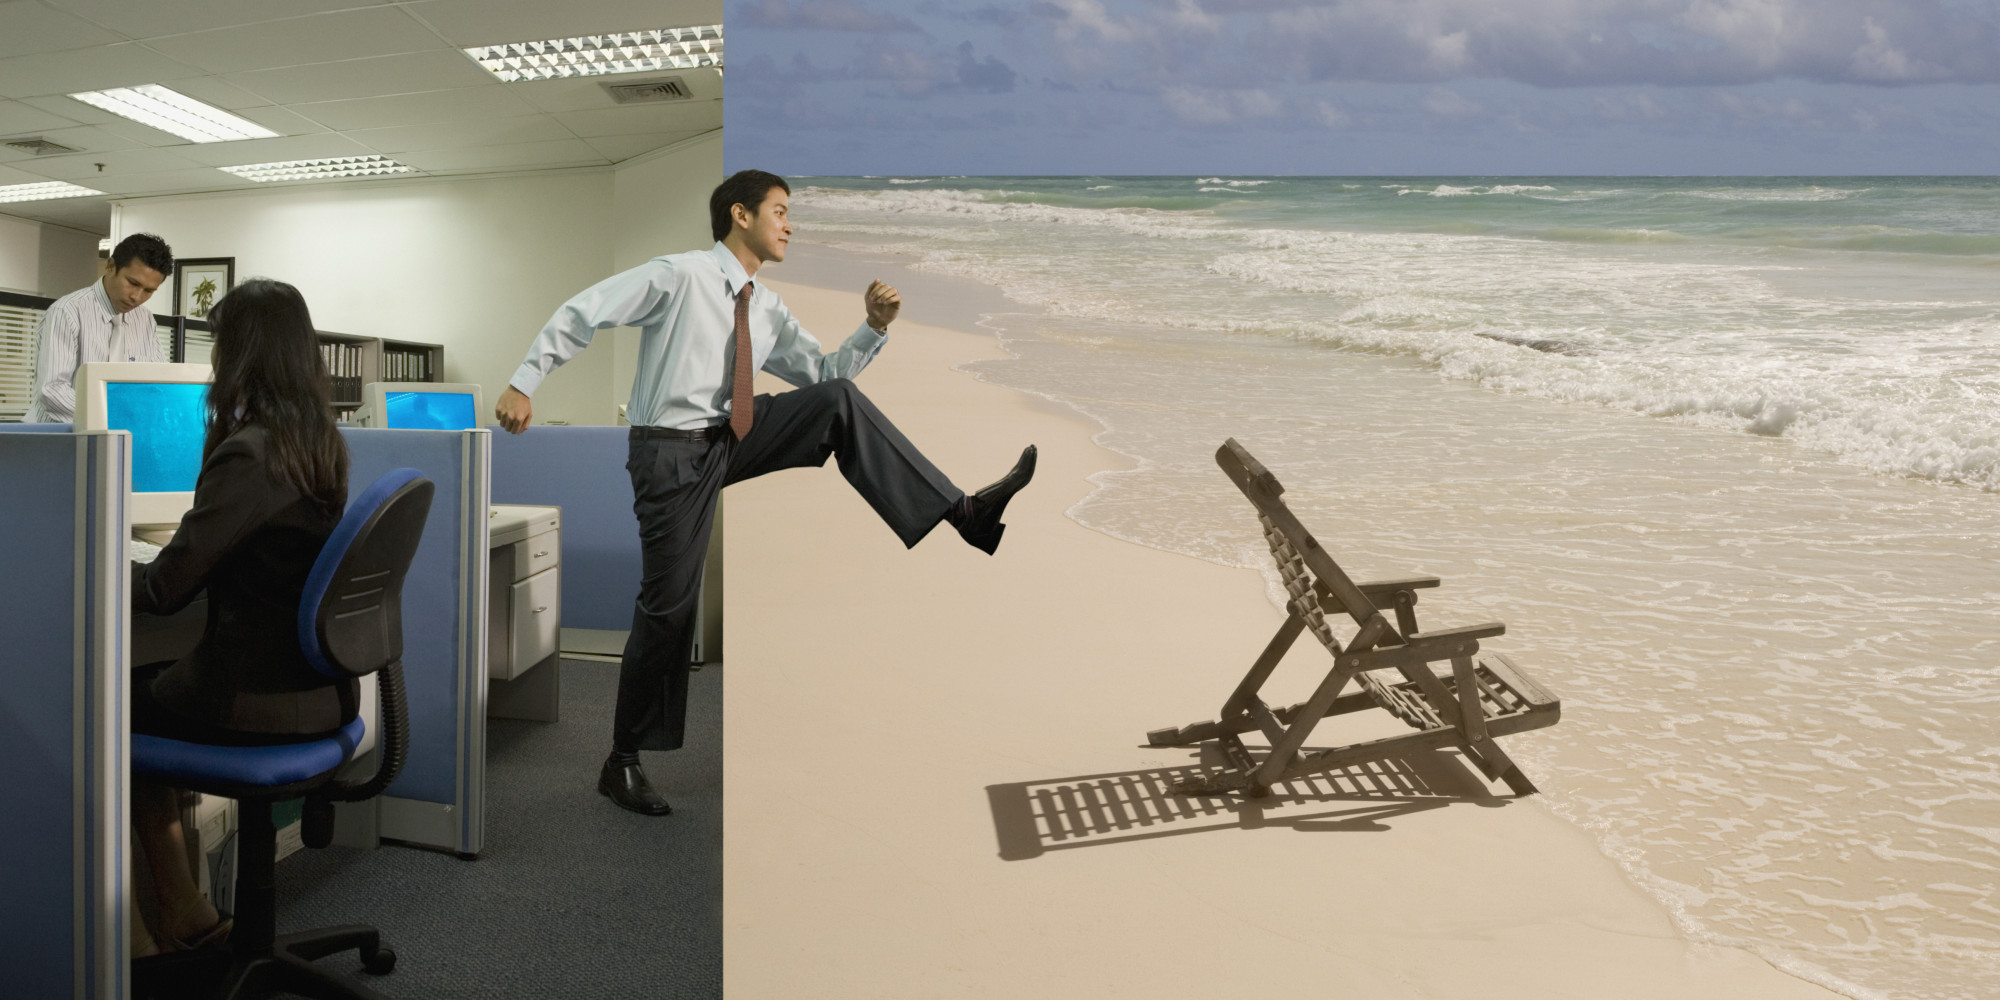 Unlimited vacation policies might be too good to be true huffpost - Post office working today ...